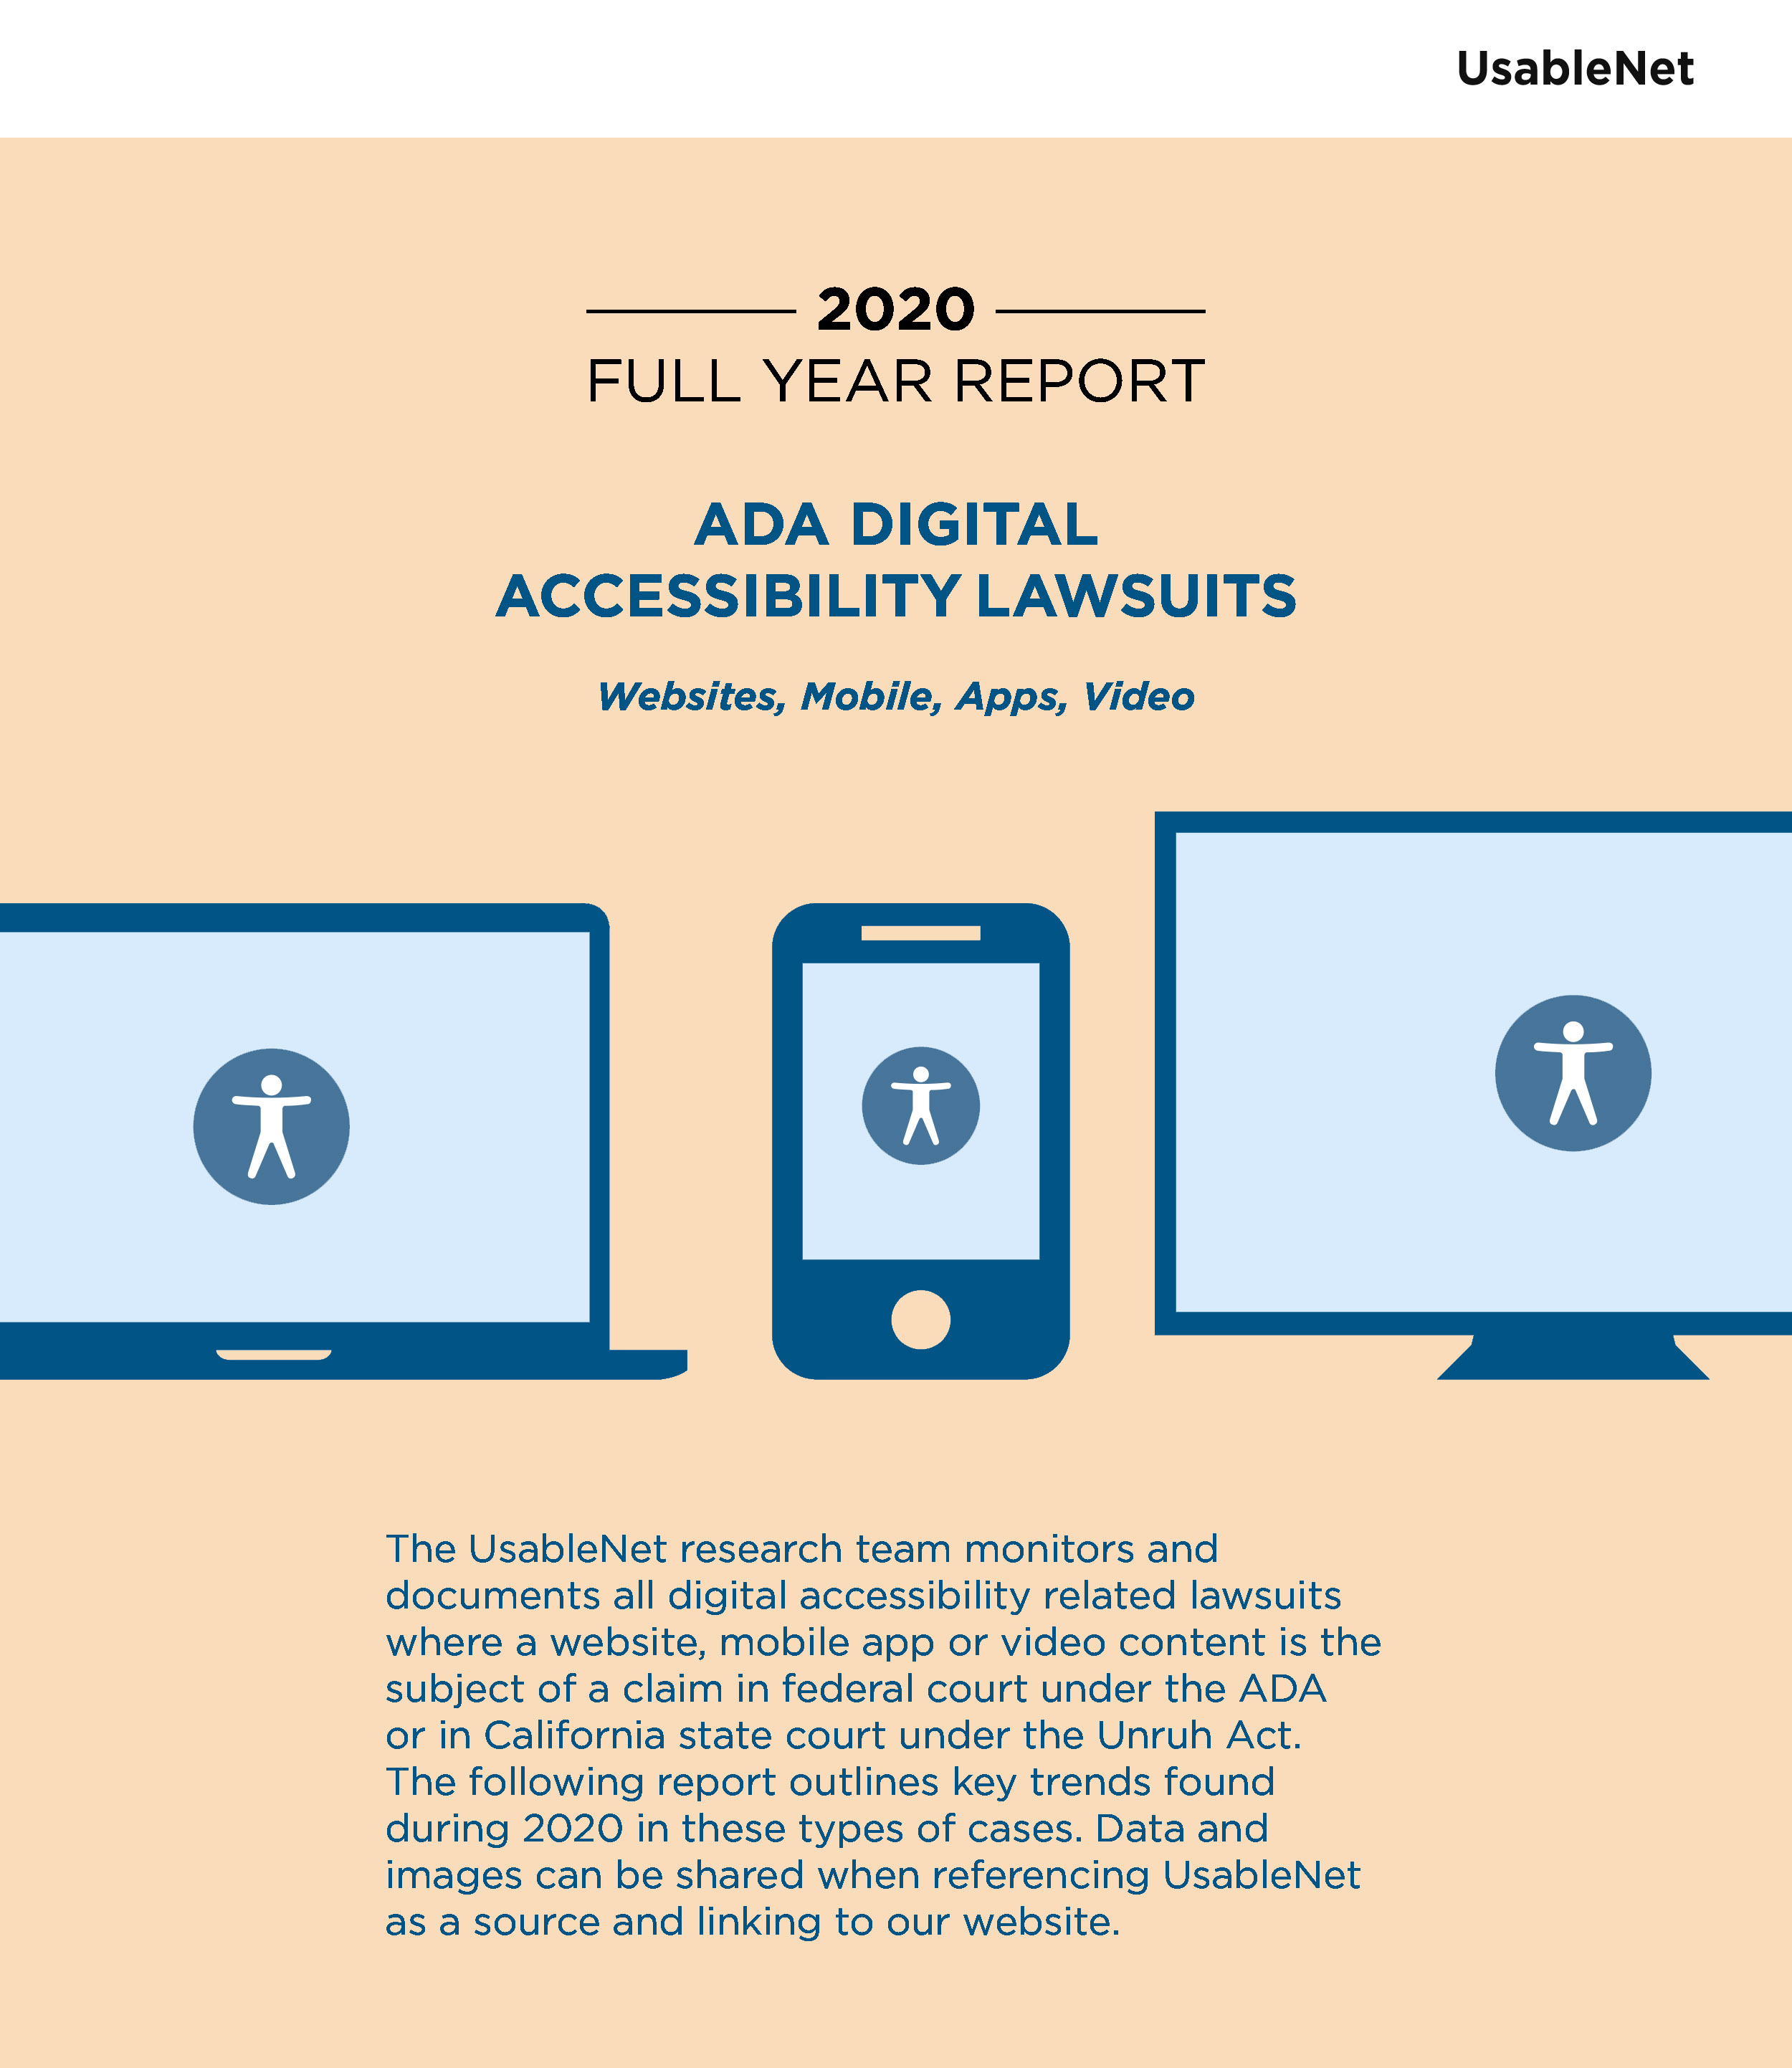 Cover of the 2020 Full Year Report on ADA Digital Lawsuits